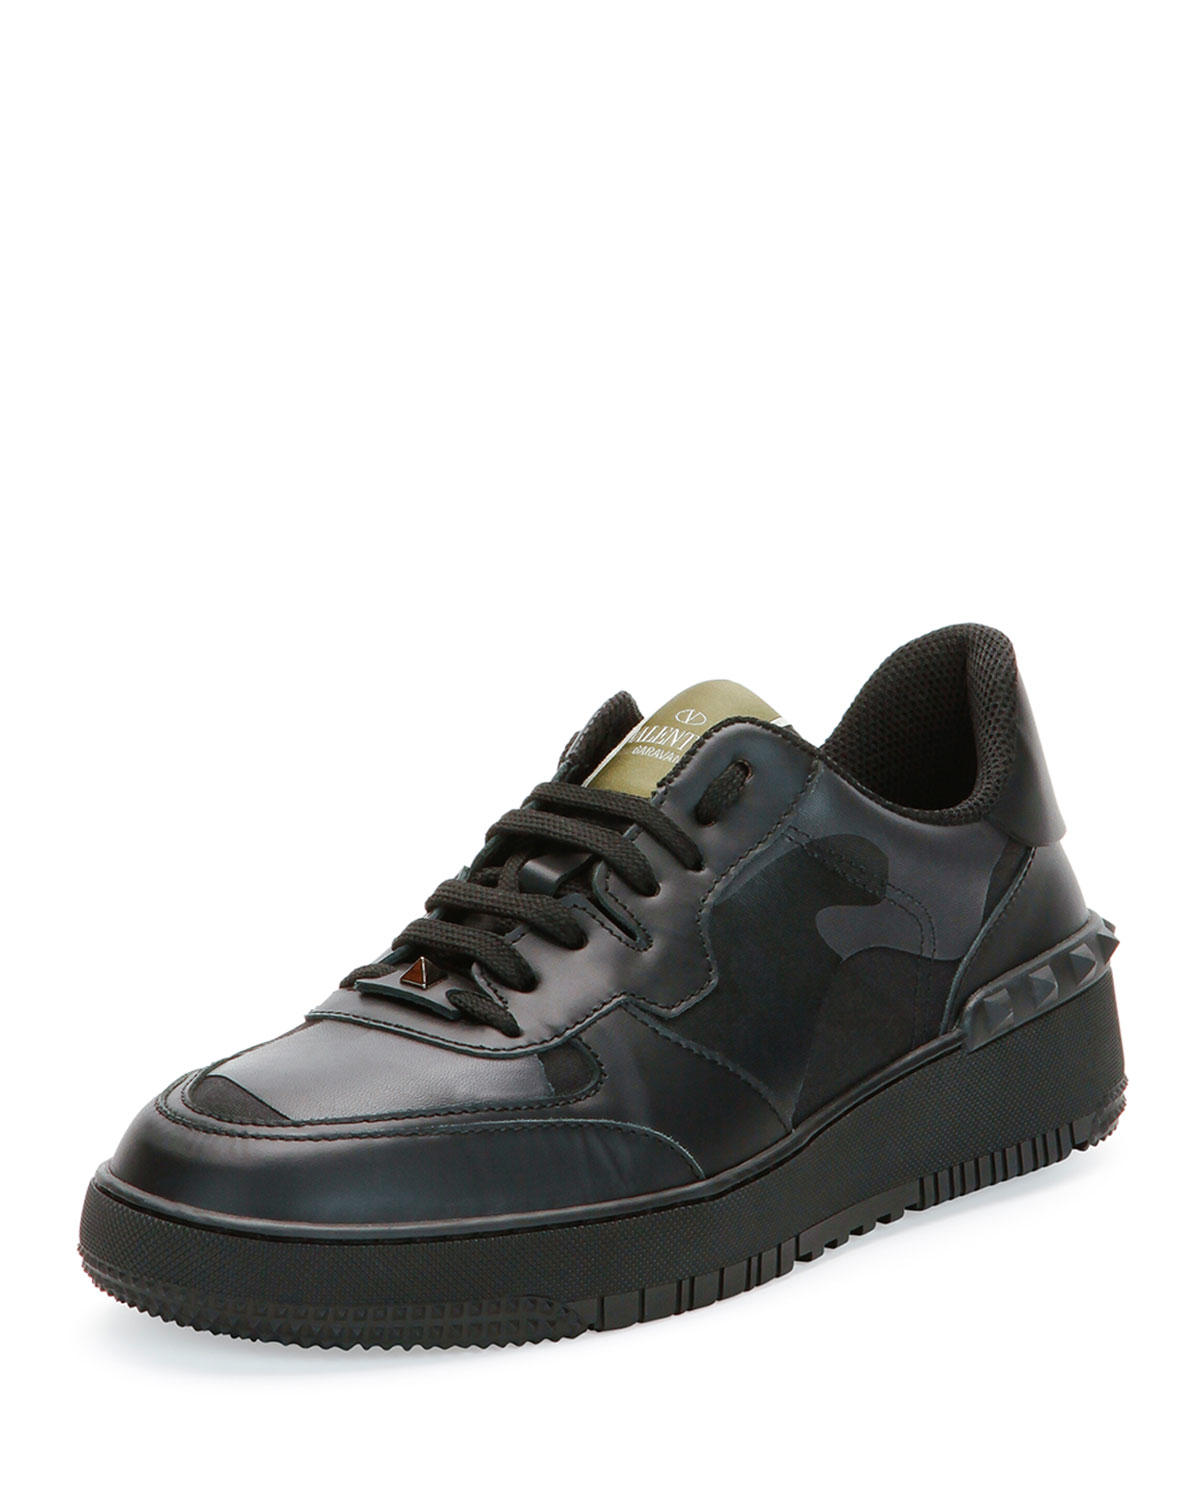 valentino rock be camo print sneakers in green for men lyst. Black Bedroom Furniture Sets. Home Design Ideas